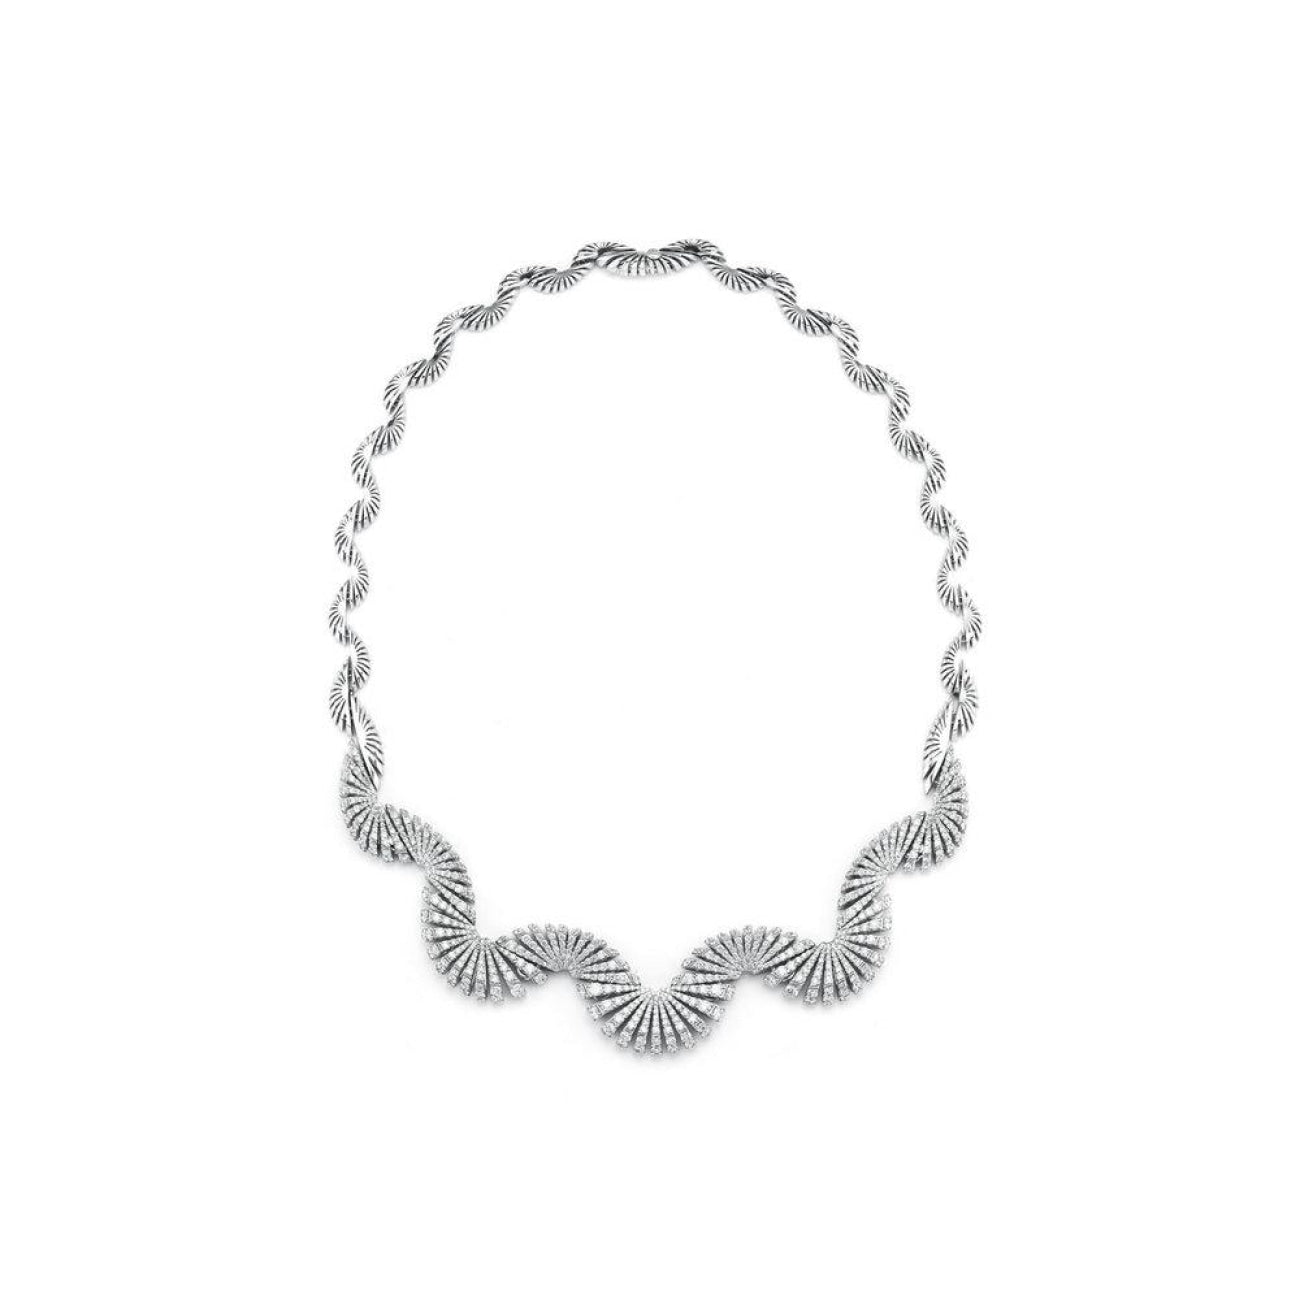 Miseno Jewelry - Ventaglio Necklace in white gold | Manfredi Jewels